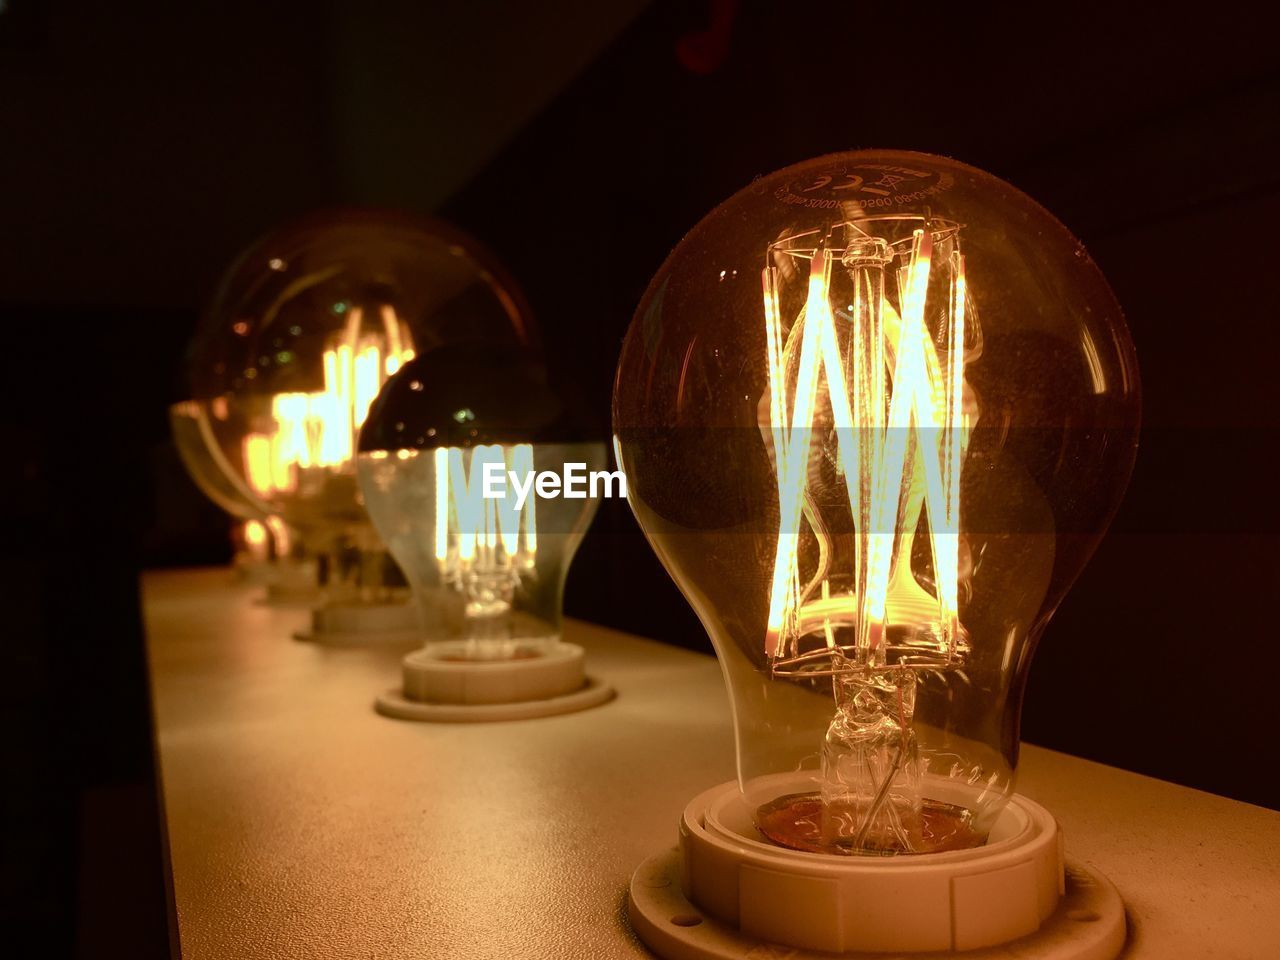 illuminated, lighting equipment, electricity, light bulb, table, filament, indoors, no people, close-up, technology